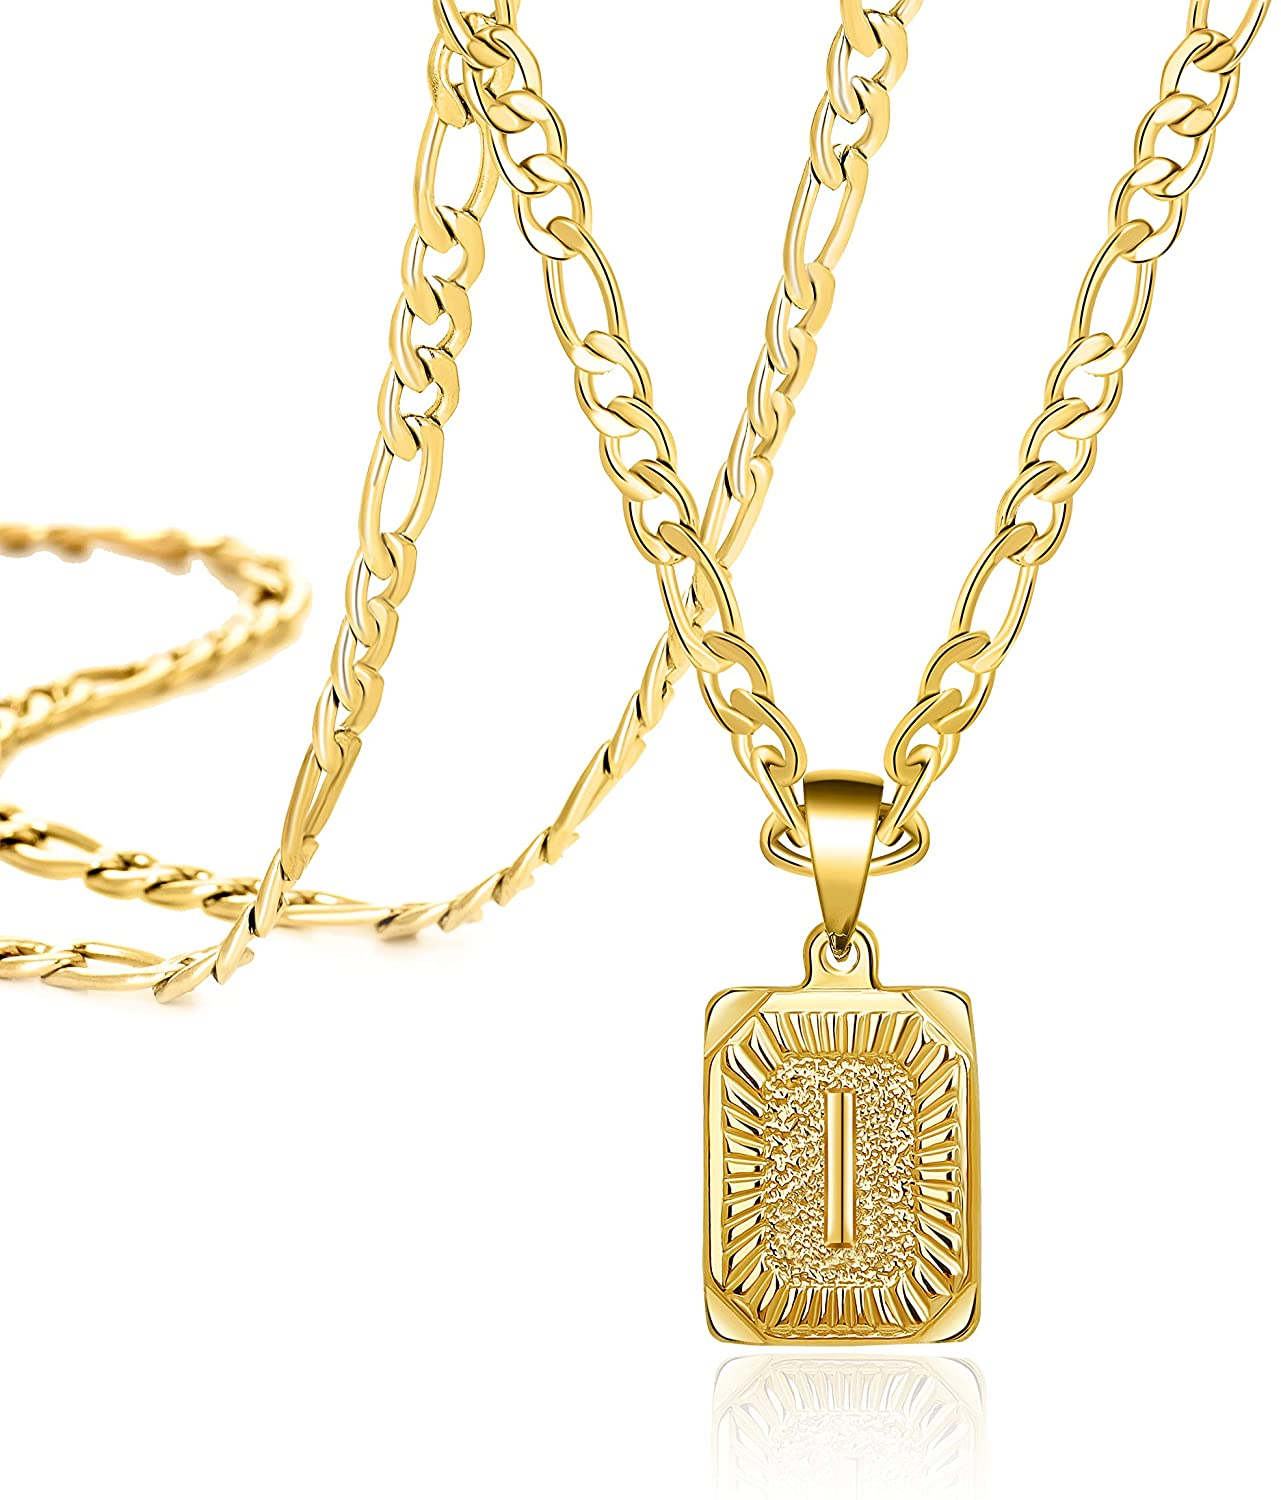 Joycuff 18K Gold Initial Necklaces for Women Men Teen Girls Best Friend Fashion Trendy Figaro Chain Square Letters Stainless Steel Pendant Necklace Personalized 26 Alphabets Length 18 20 22 24 Inches